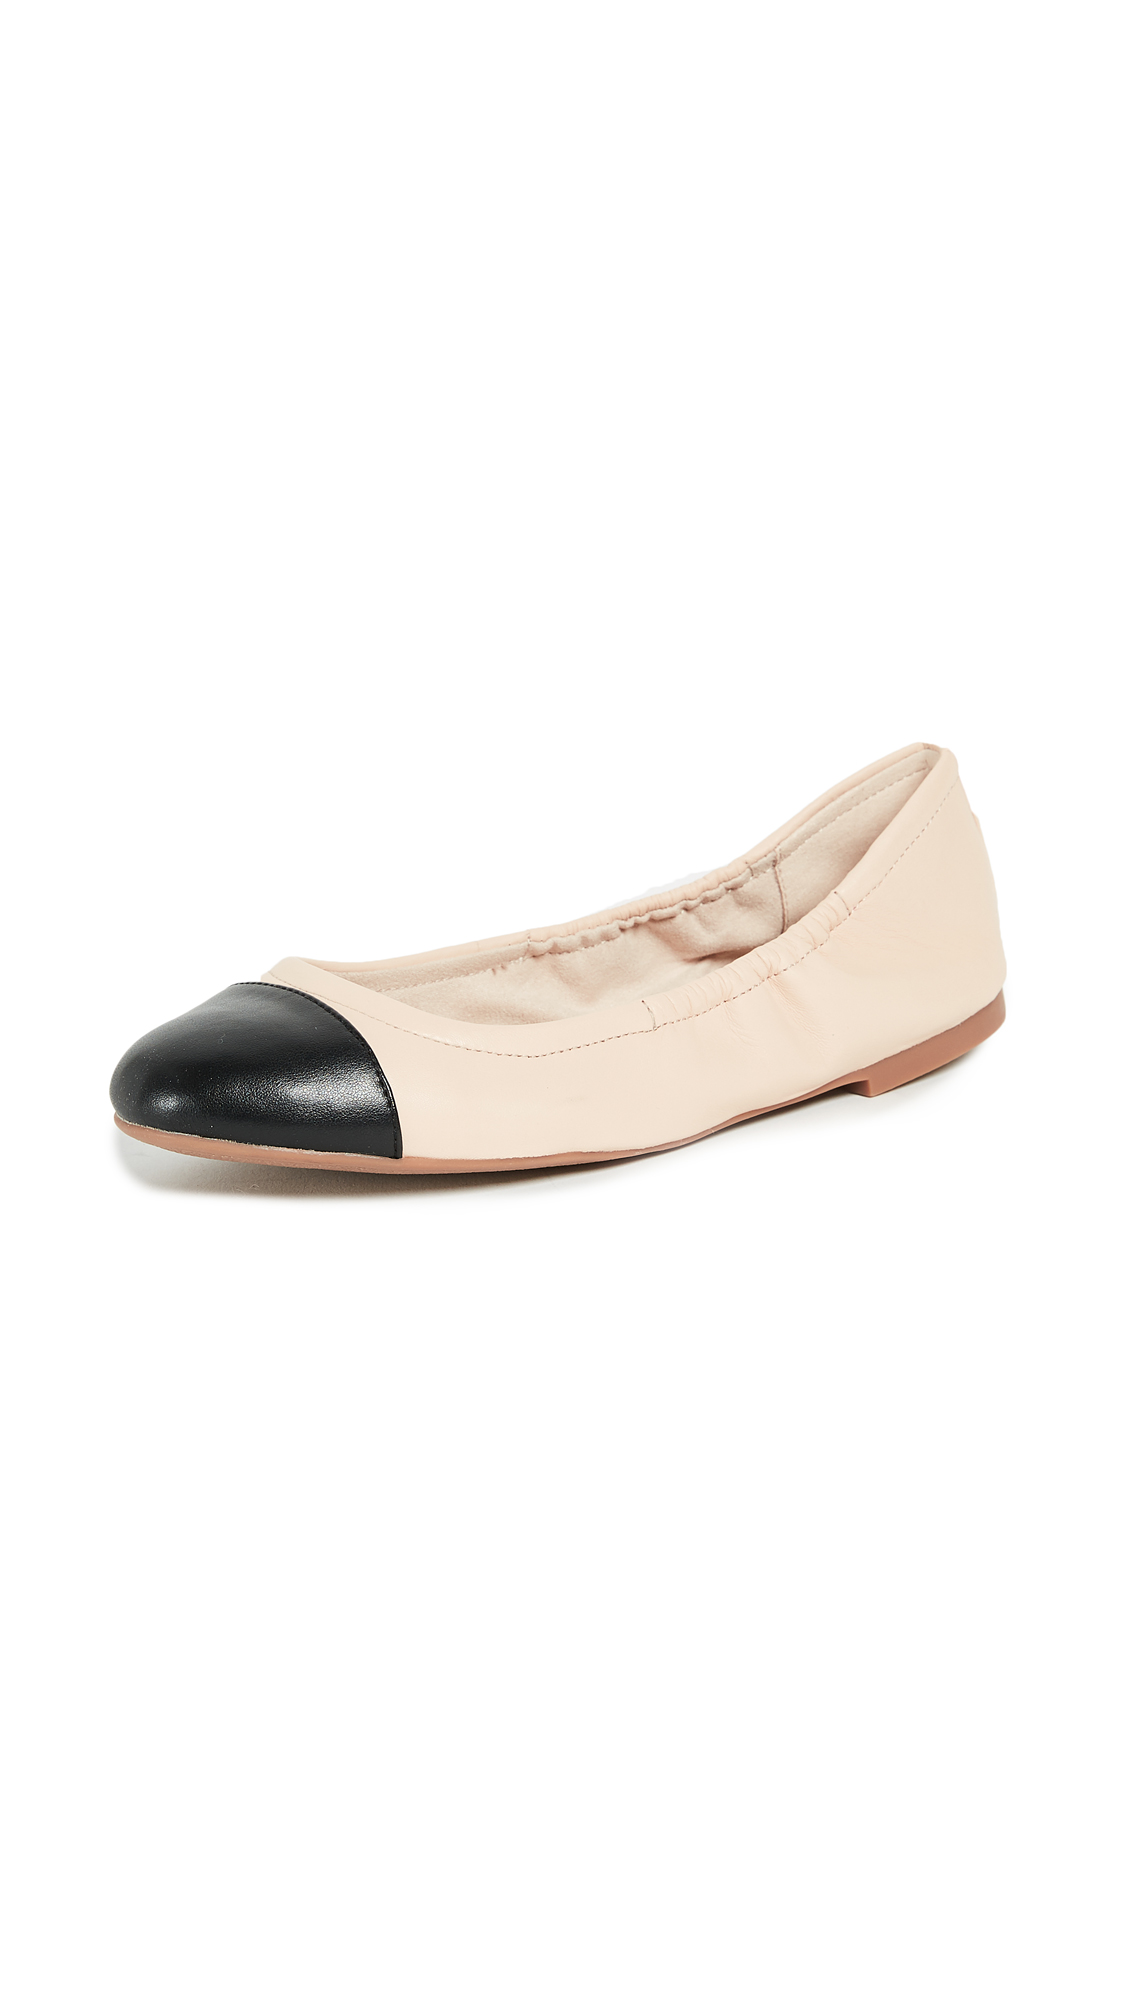 Sam Edelman Fraley Flats - Summer Sand/Black